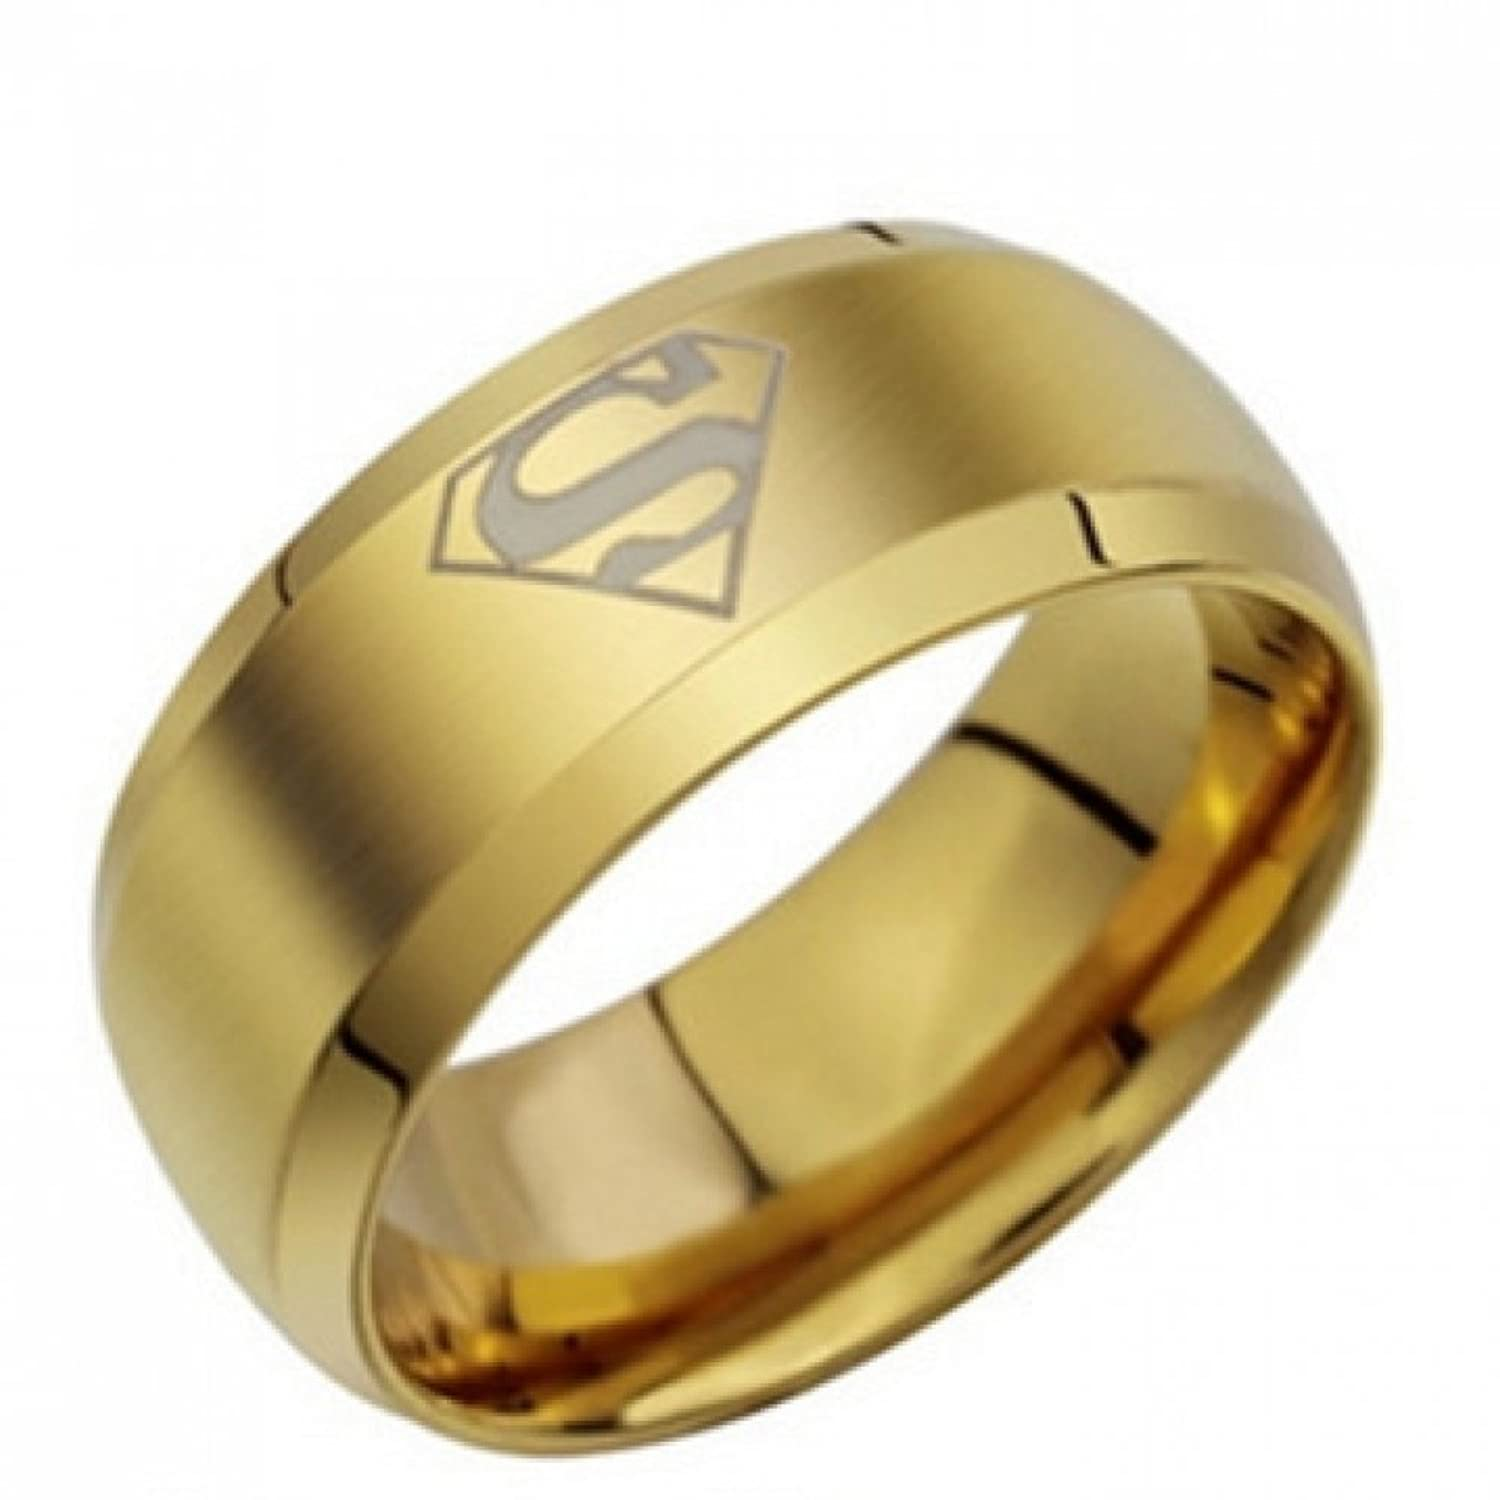 rings s asia gold men single july singapore jewellers jewellery at ring studded stone grt for from